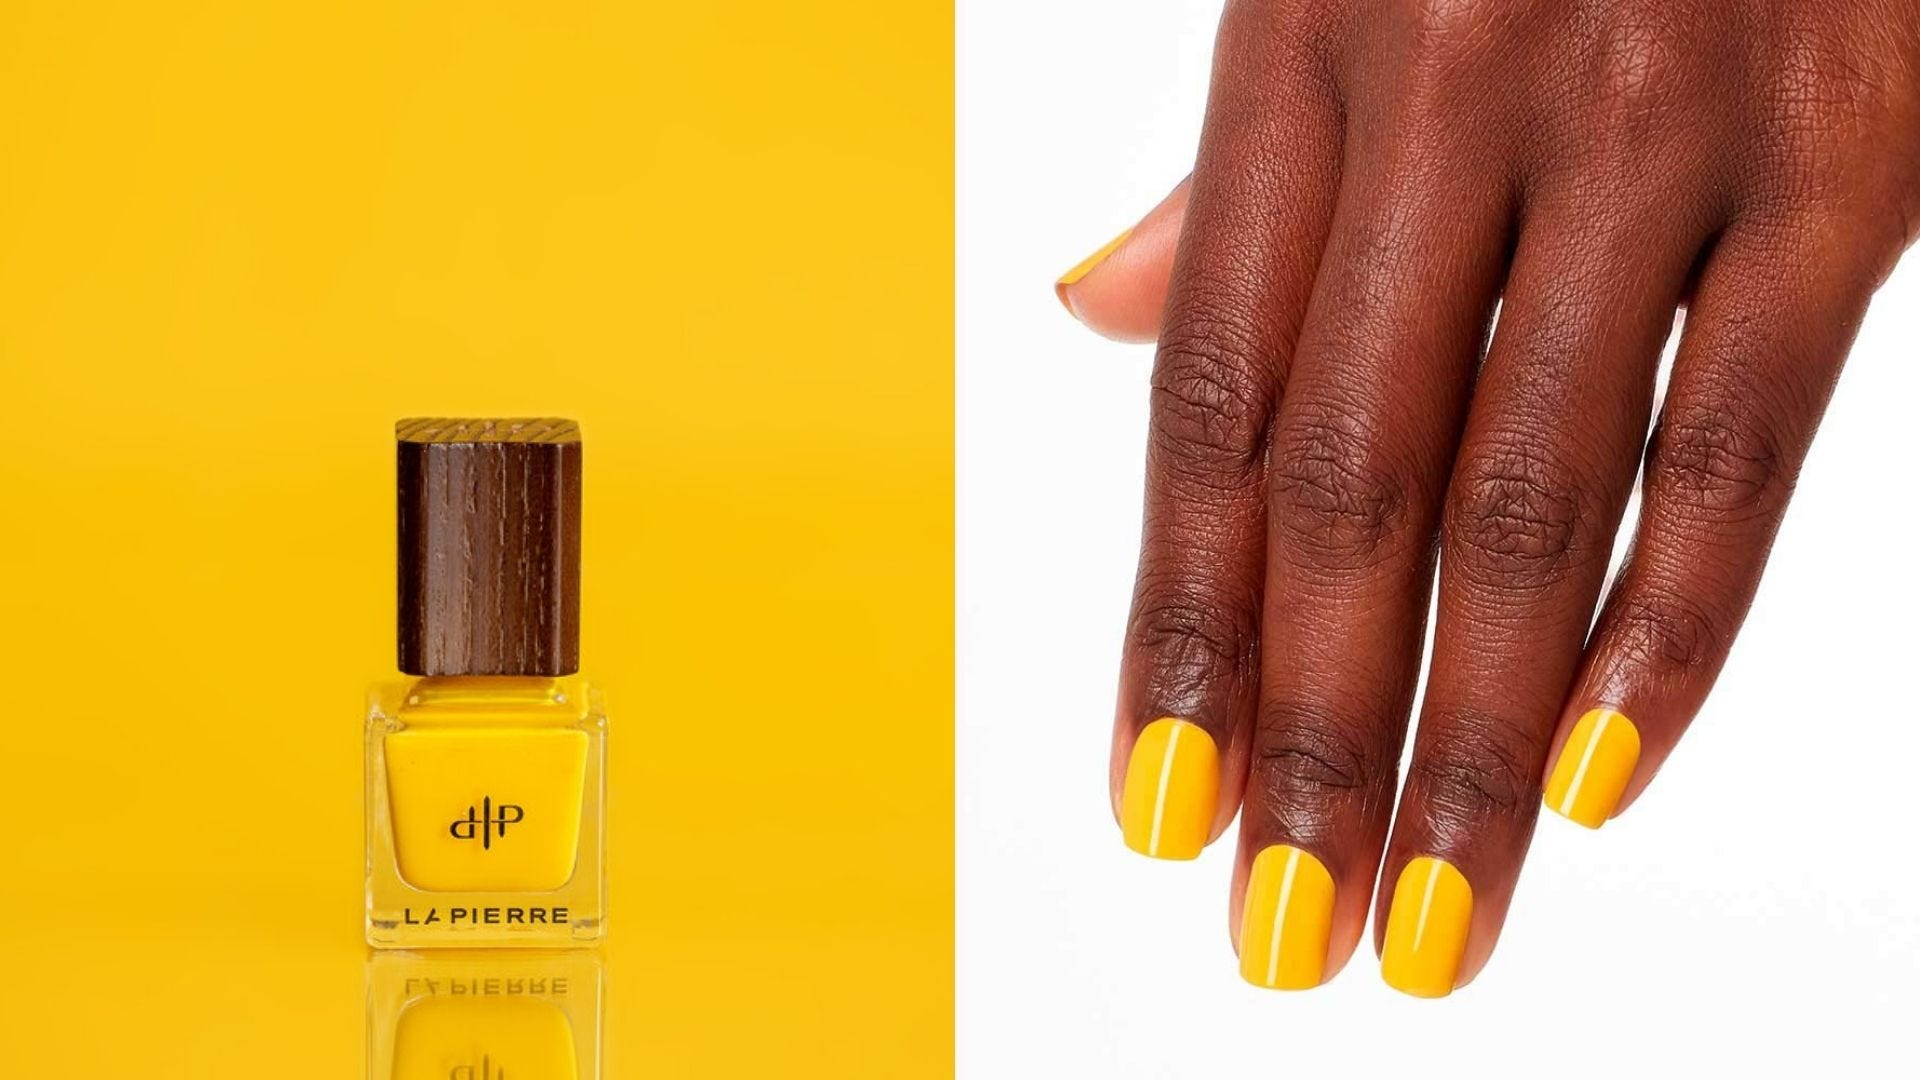 A bottle of golden yellow nail polish; a dark-skinned hand with golden yellow nails